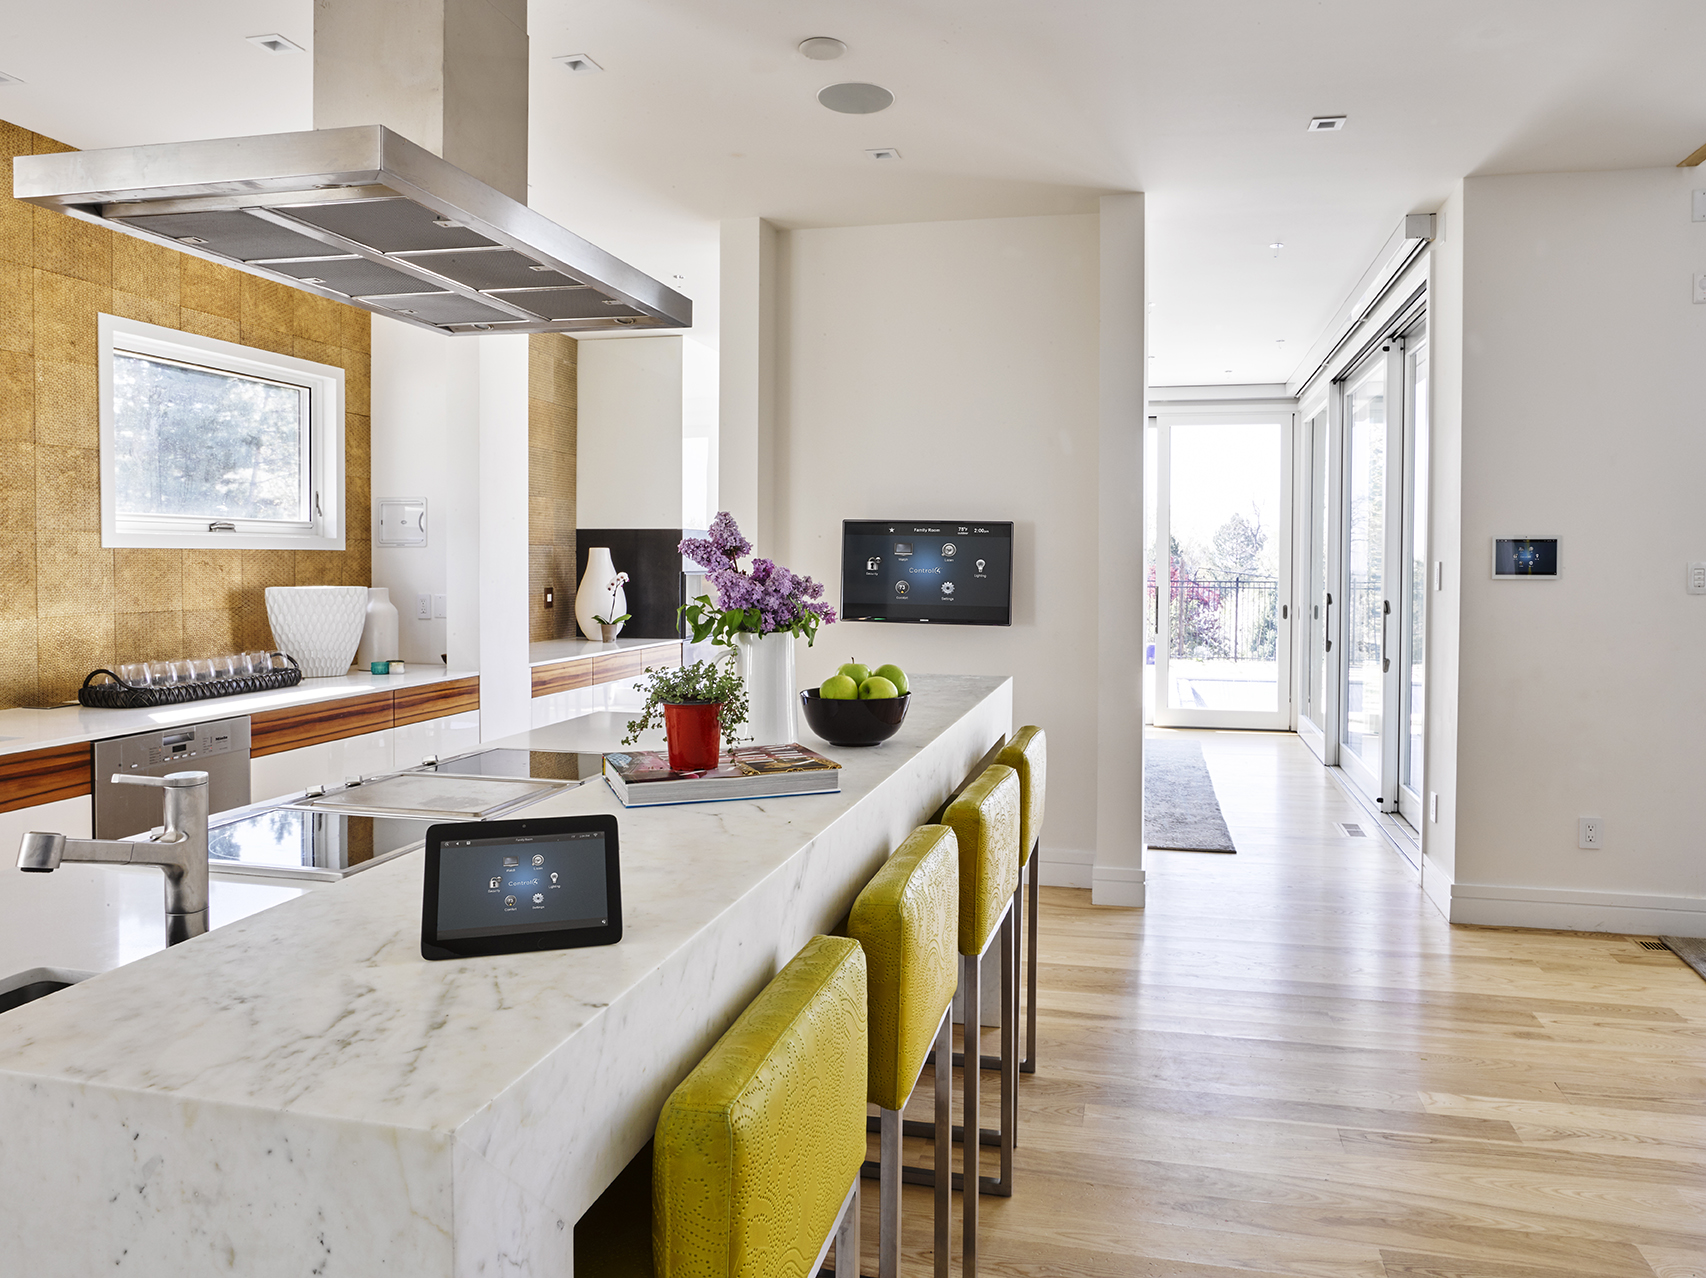 AFFORDABLE ELECTRICAL SERVICES FOR YOUR HOME   From troubleshooting and repair,to complete design renovation, our expert technicians can do it all.    View Residential Services